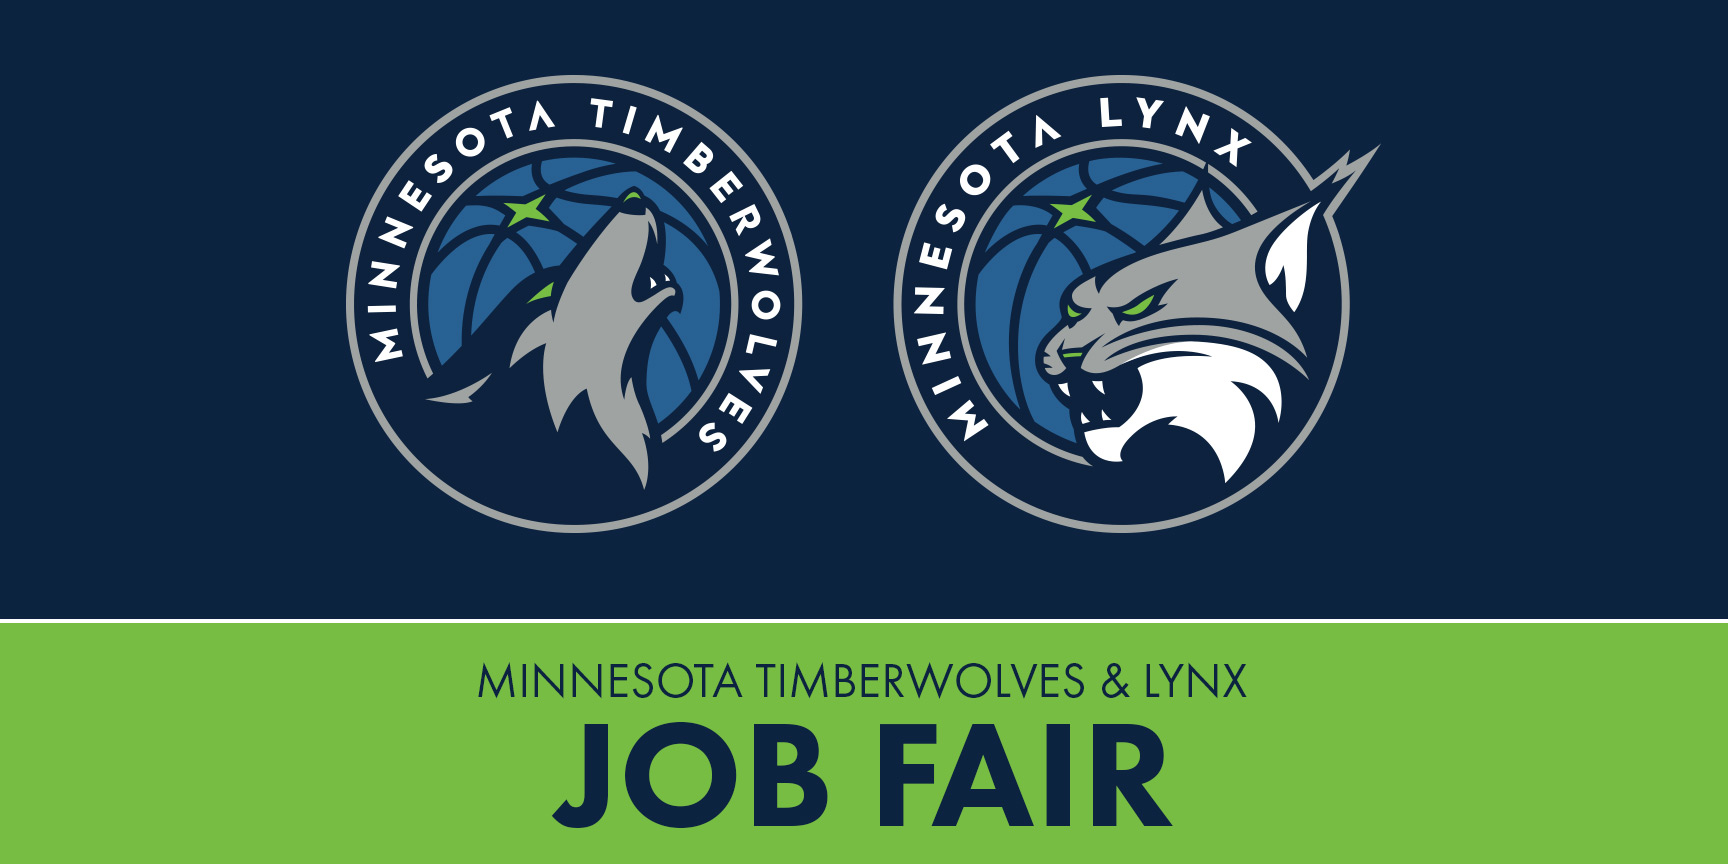 Timberwolves and Lynx Job Fair